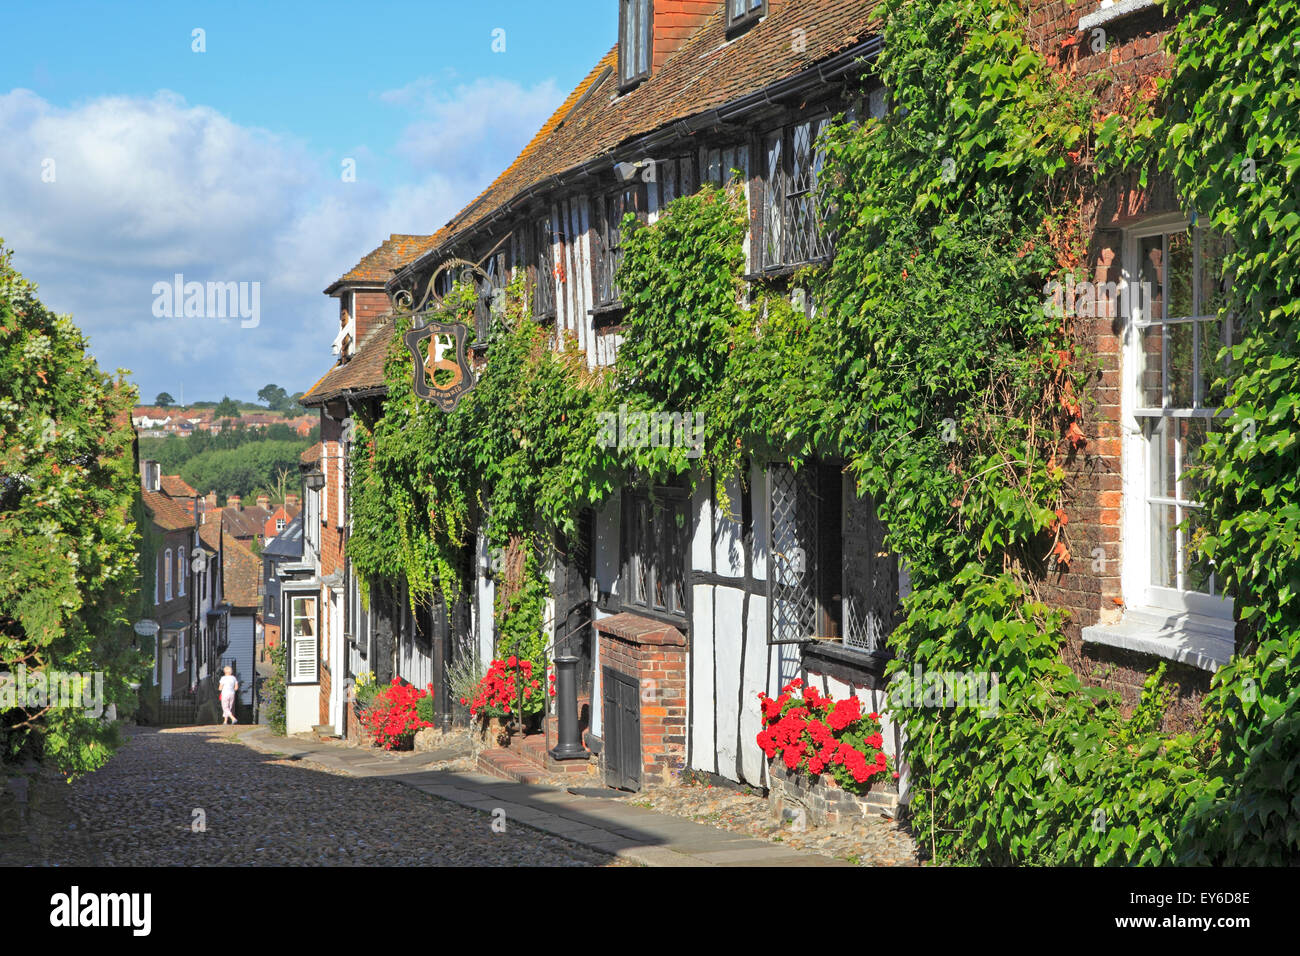 Rye Sussex. The historic ivy clad 15th Century Mermaid Inn, associated with smuggling in days gone by, Mermaid Street, - Stock Image